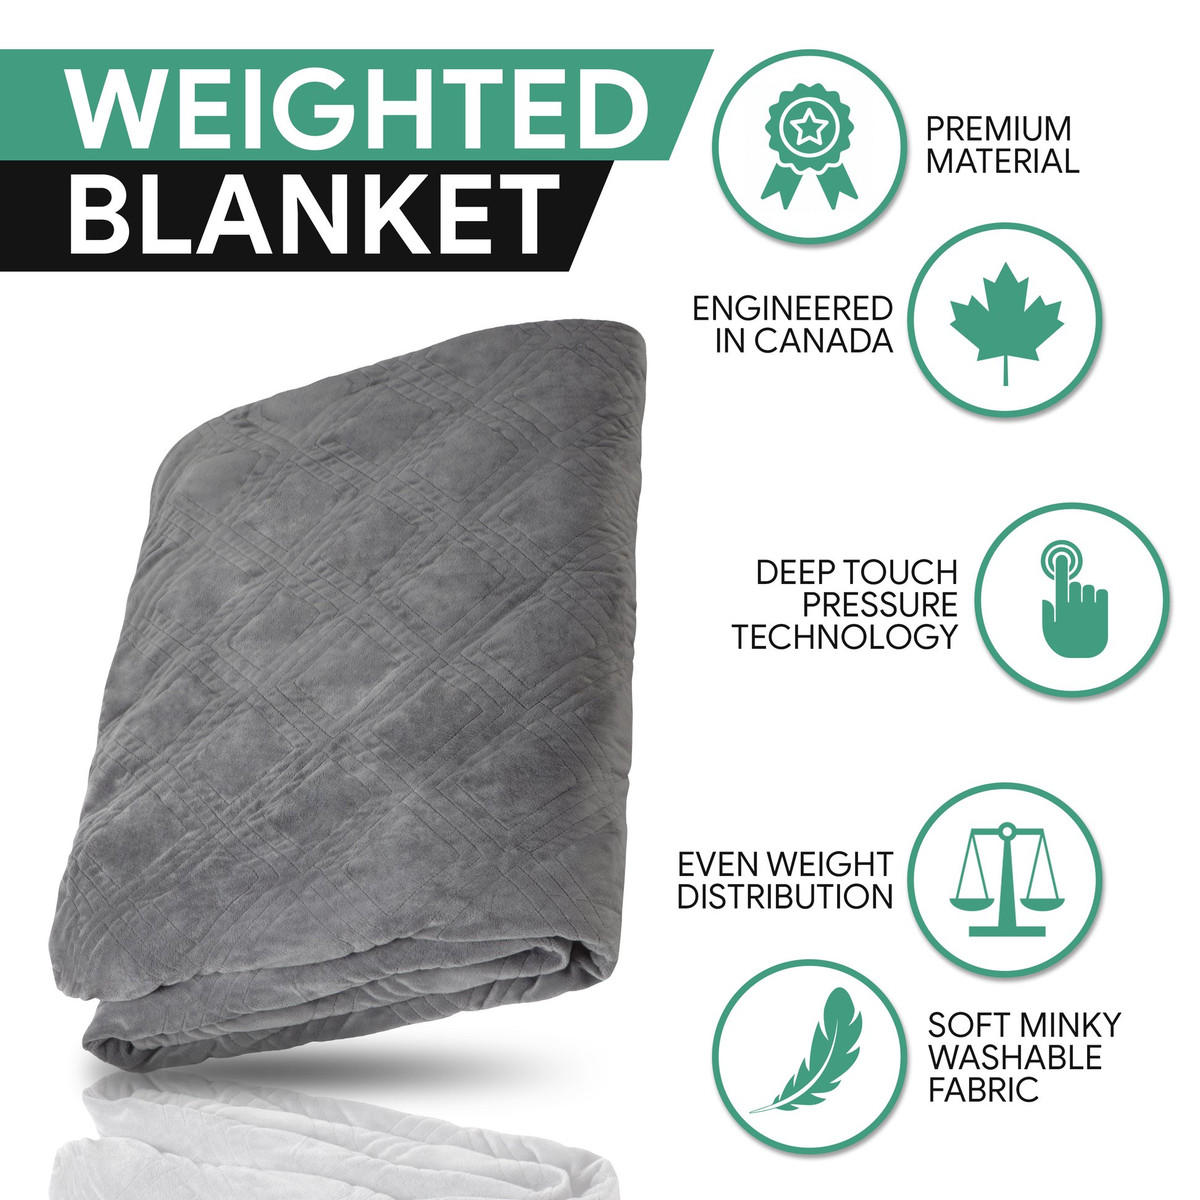 HUSH Classic Blanket with Duvet Cover - Twin 60x80 - 20 Pounds